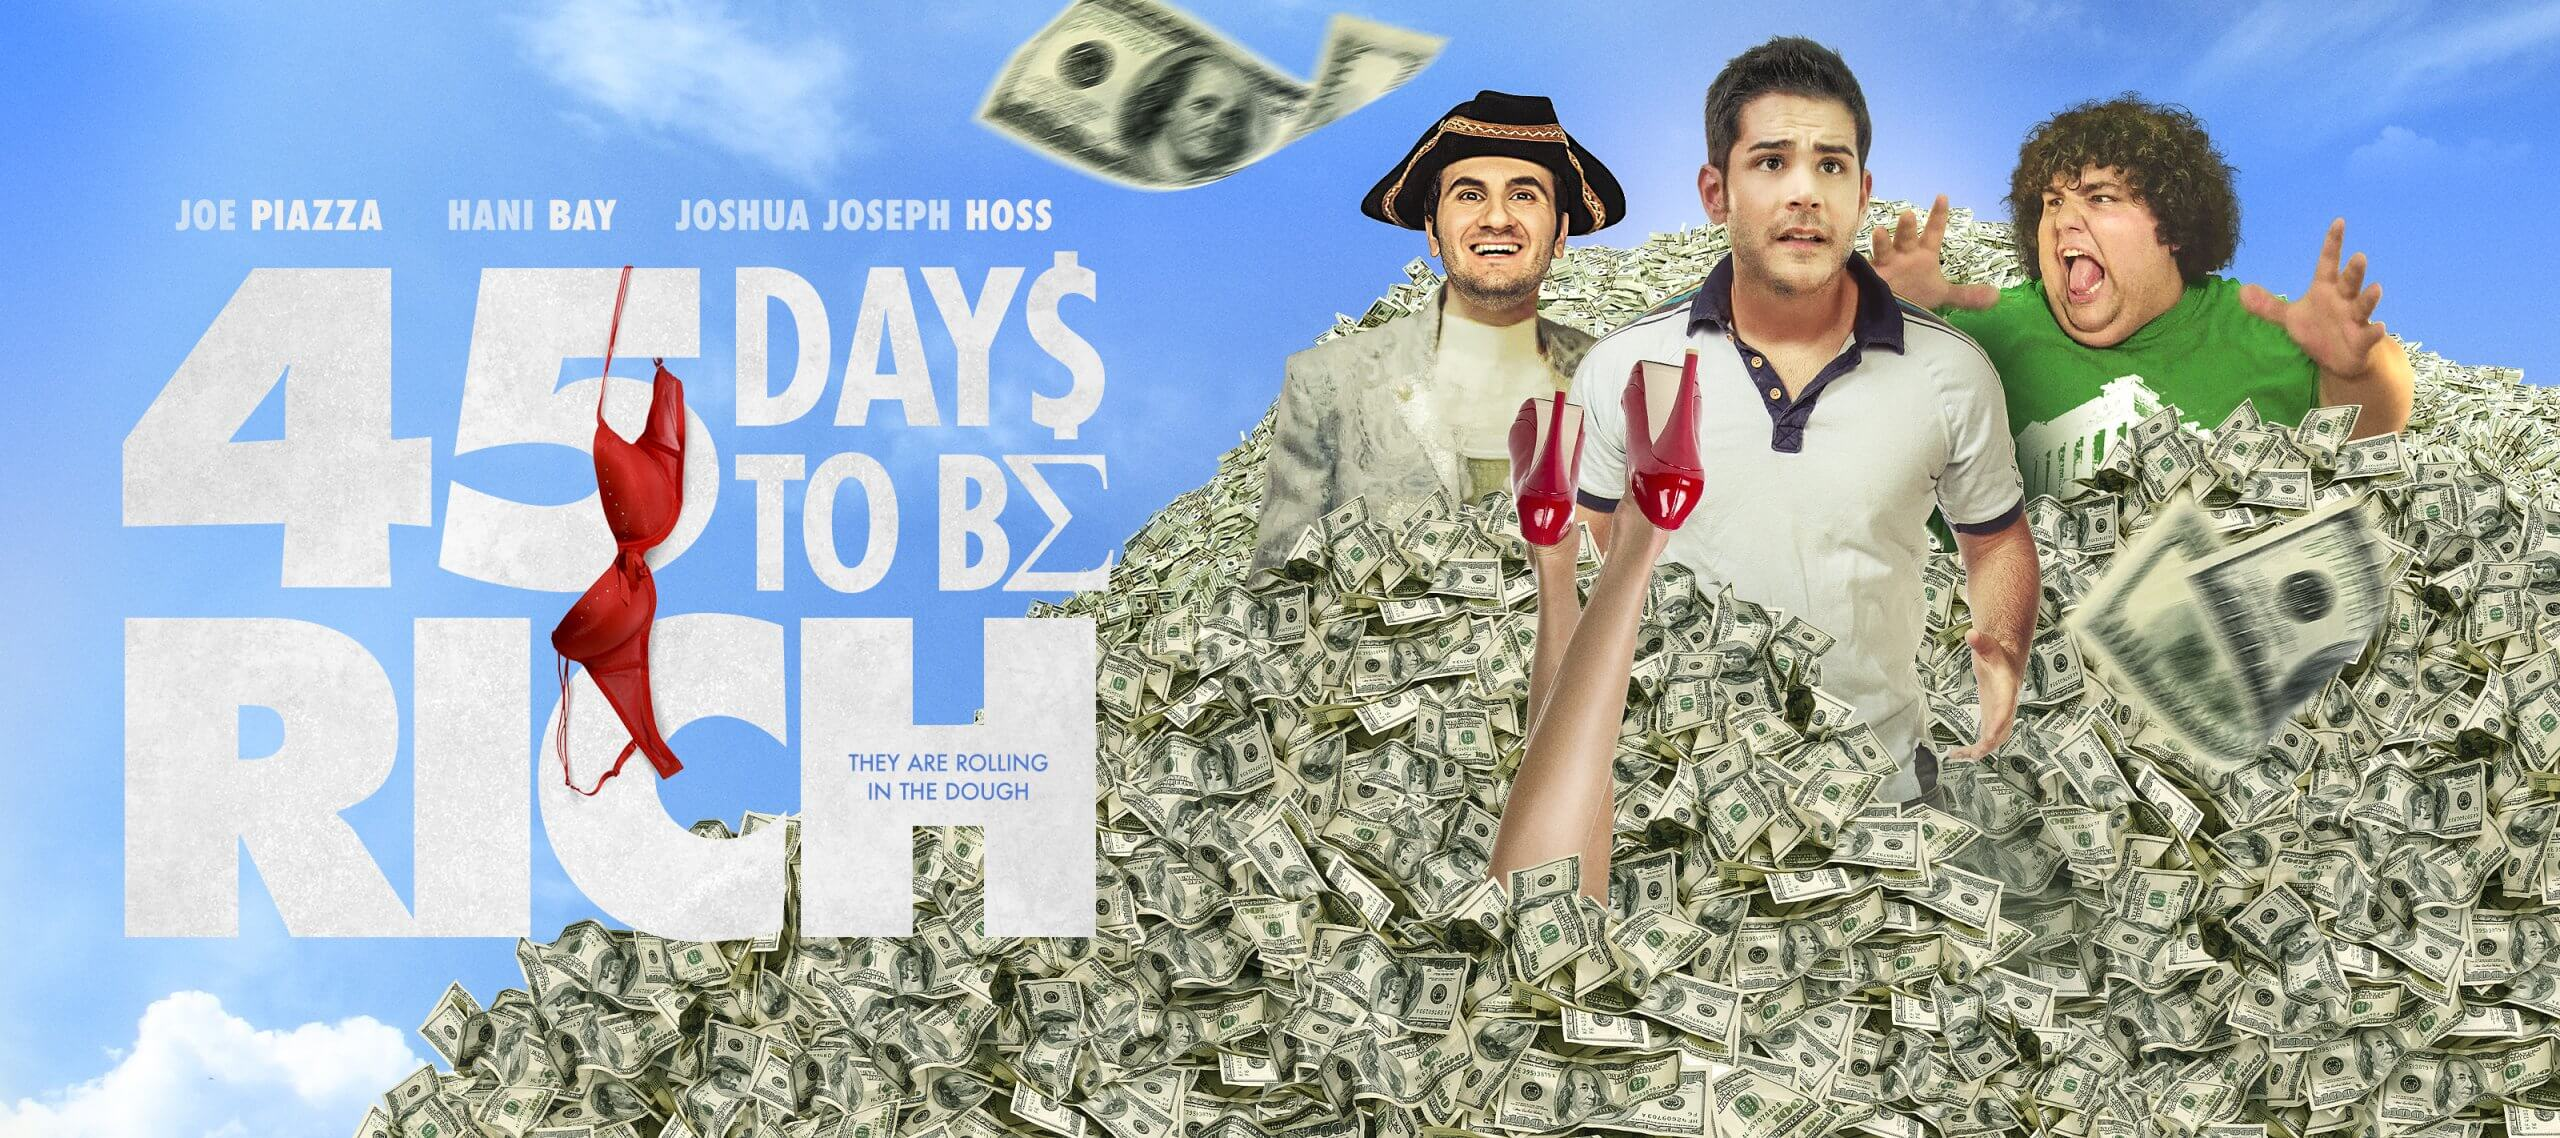 45 Days to Be Rich 3200x1422 1 scaled 45 DAYS TO BE RICH